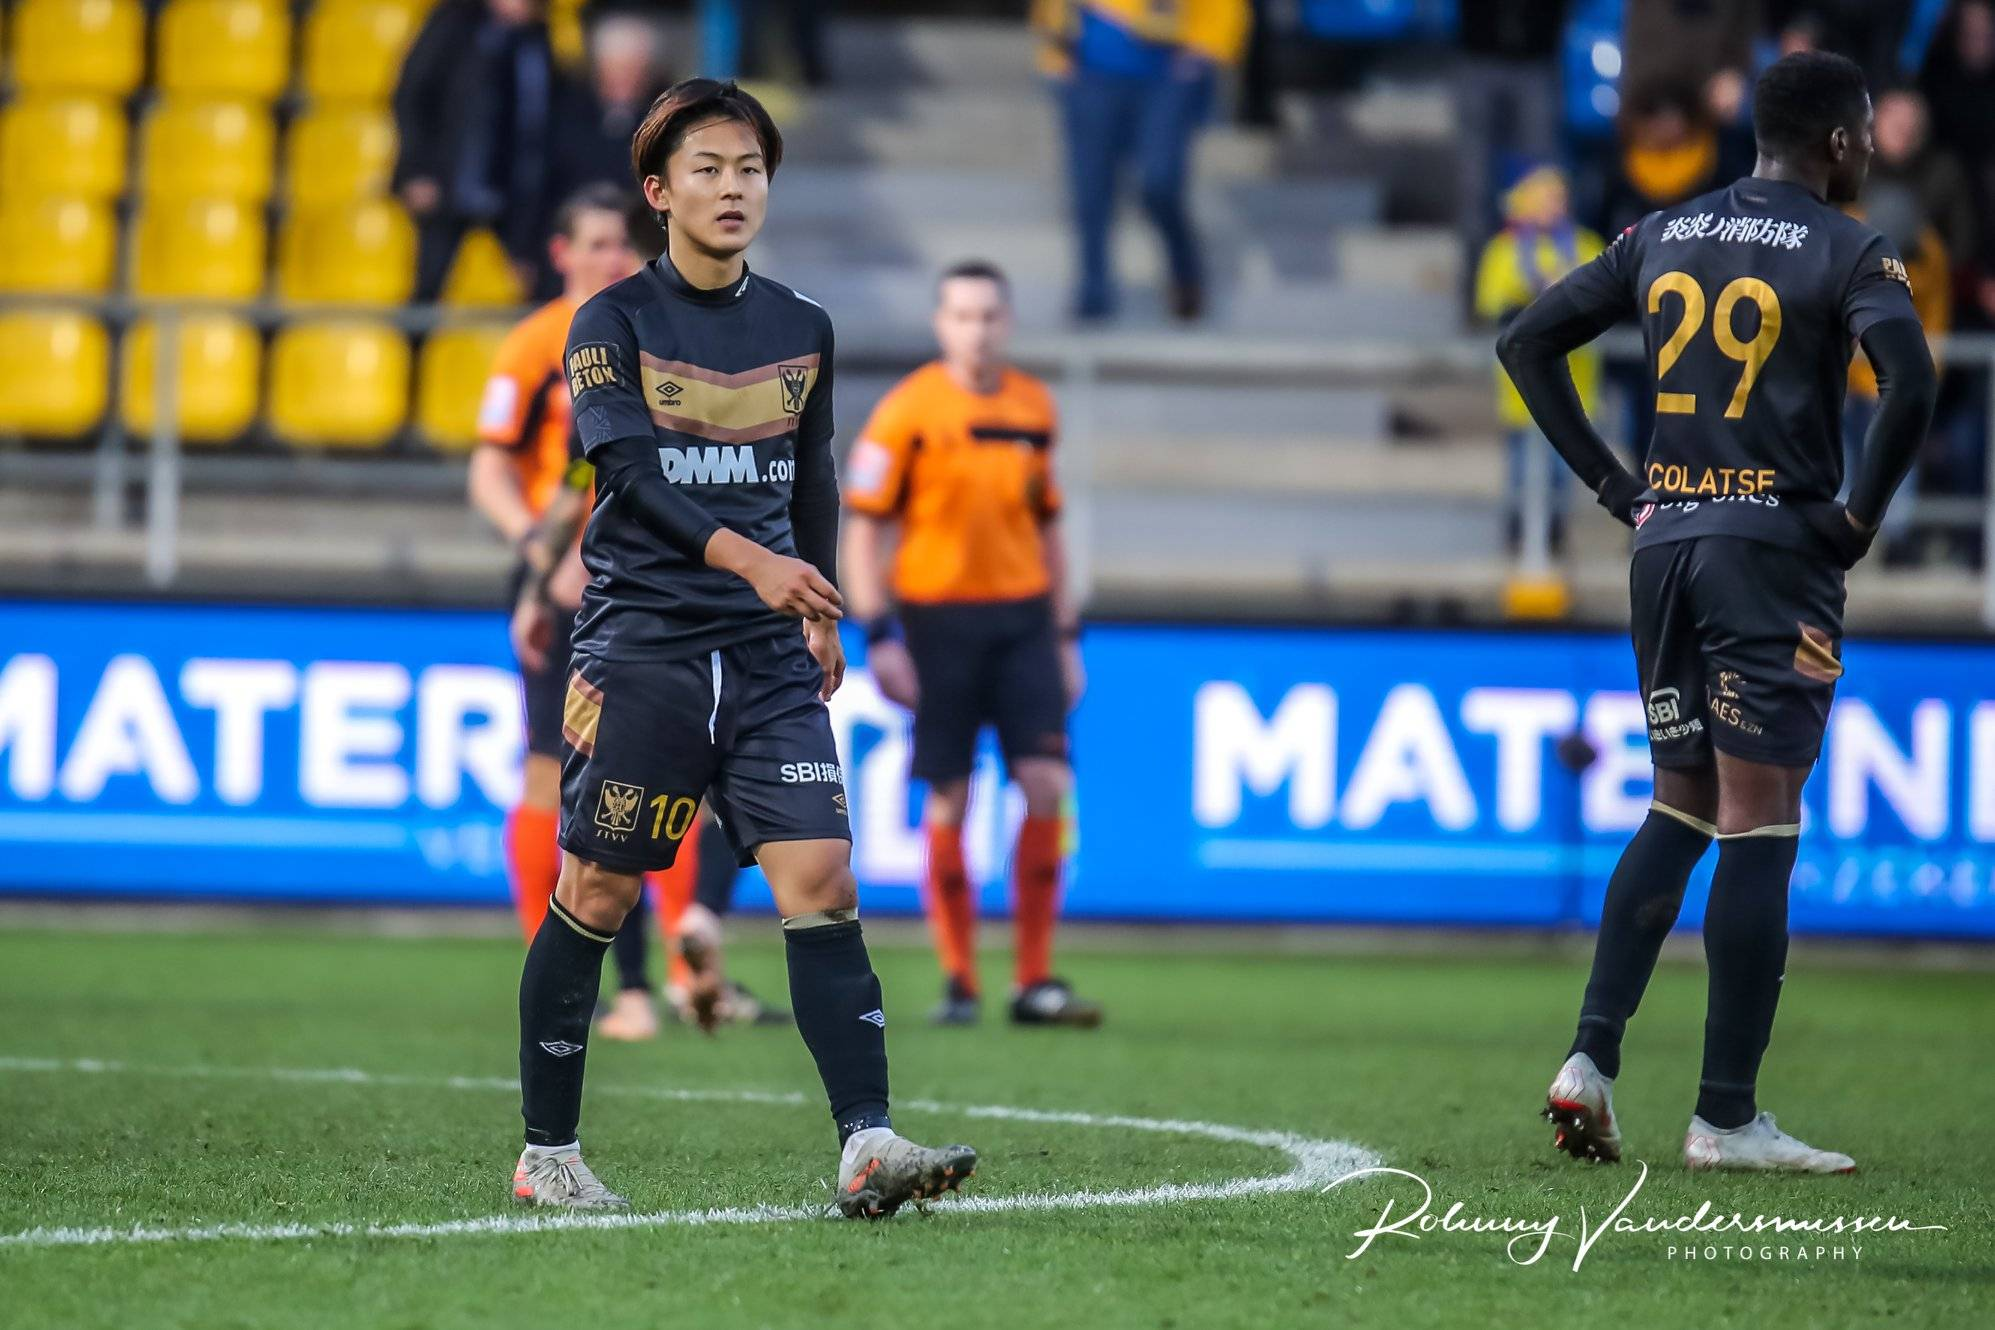 'Korean Messi', Lee Seung-woo finally debuts in Jupiter Pro League… It took 4 months since his signing